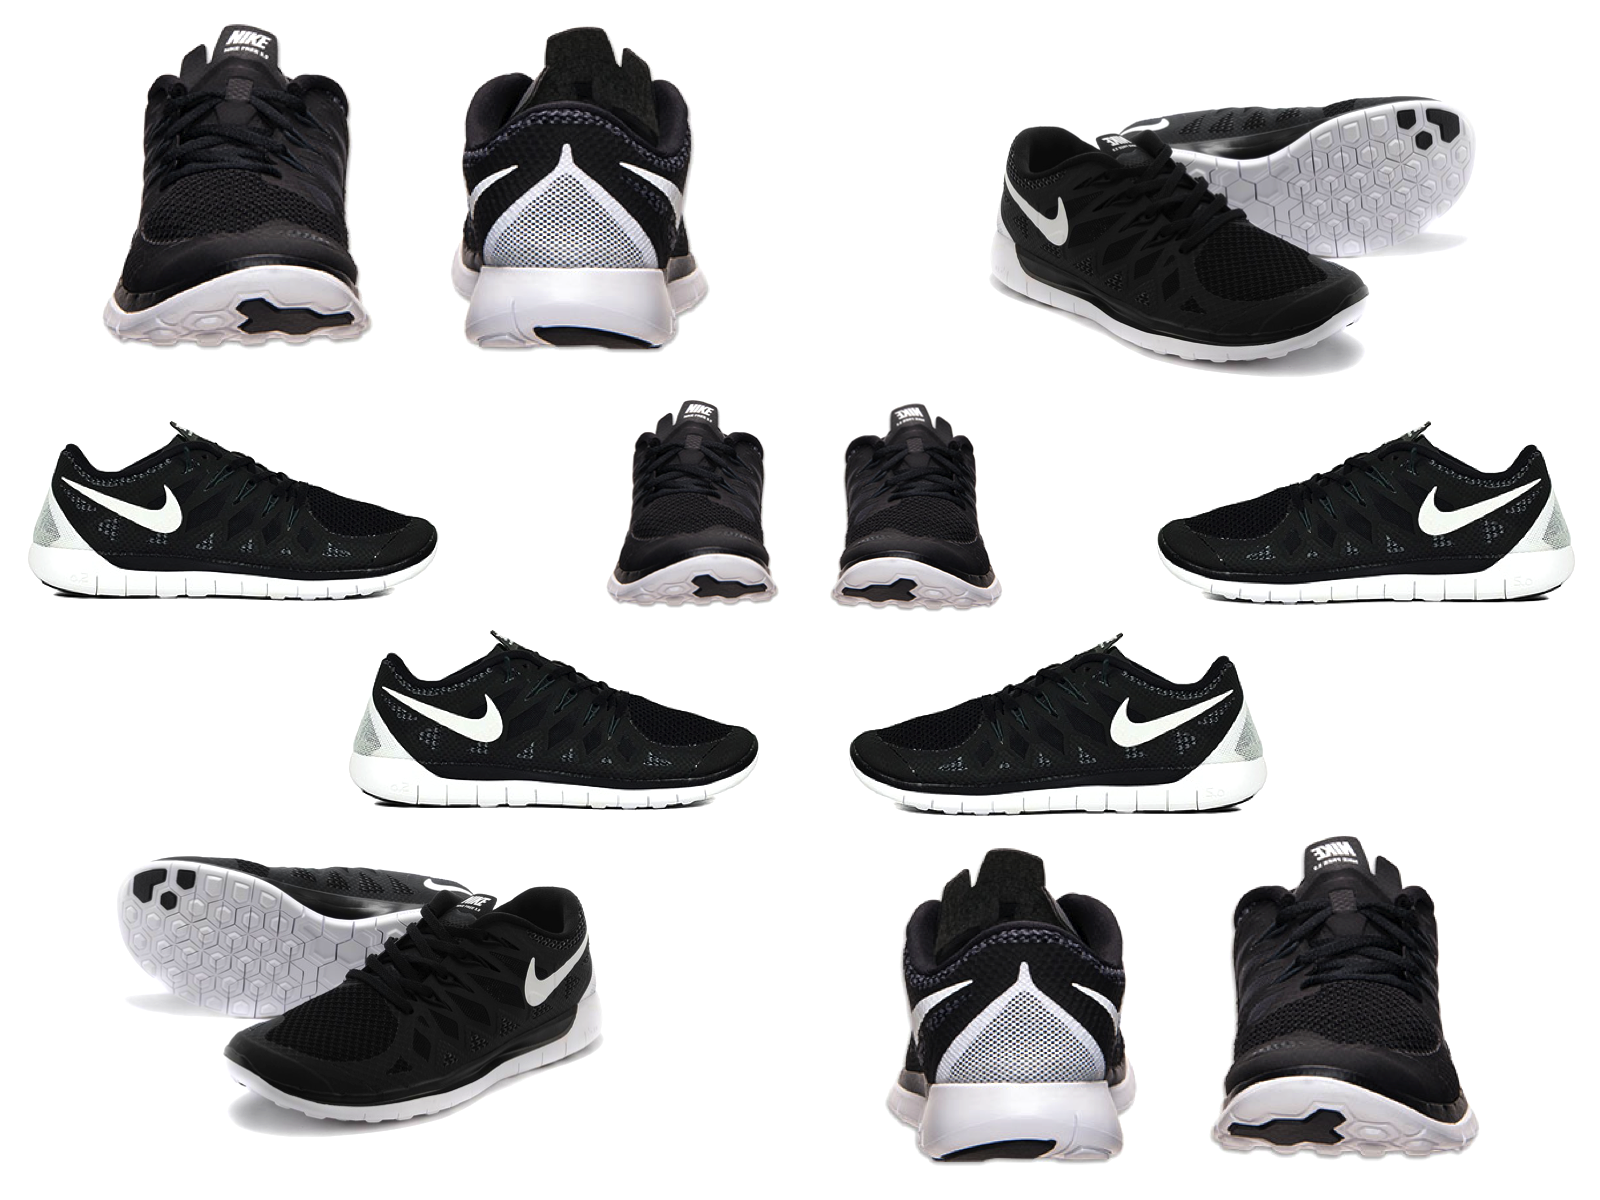 nike free 5.0 2014 INTO THE FASHION: LOVE IT| WISH IT|| SHOP IT... Nike Free 5.0 ...